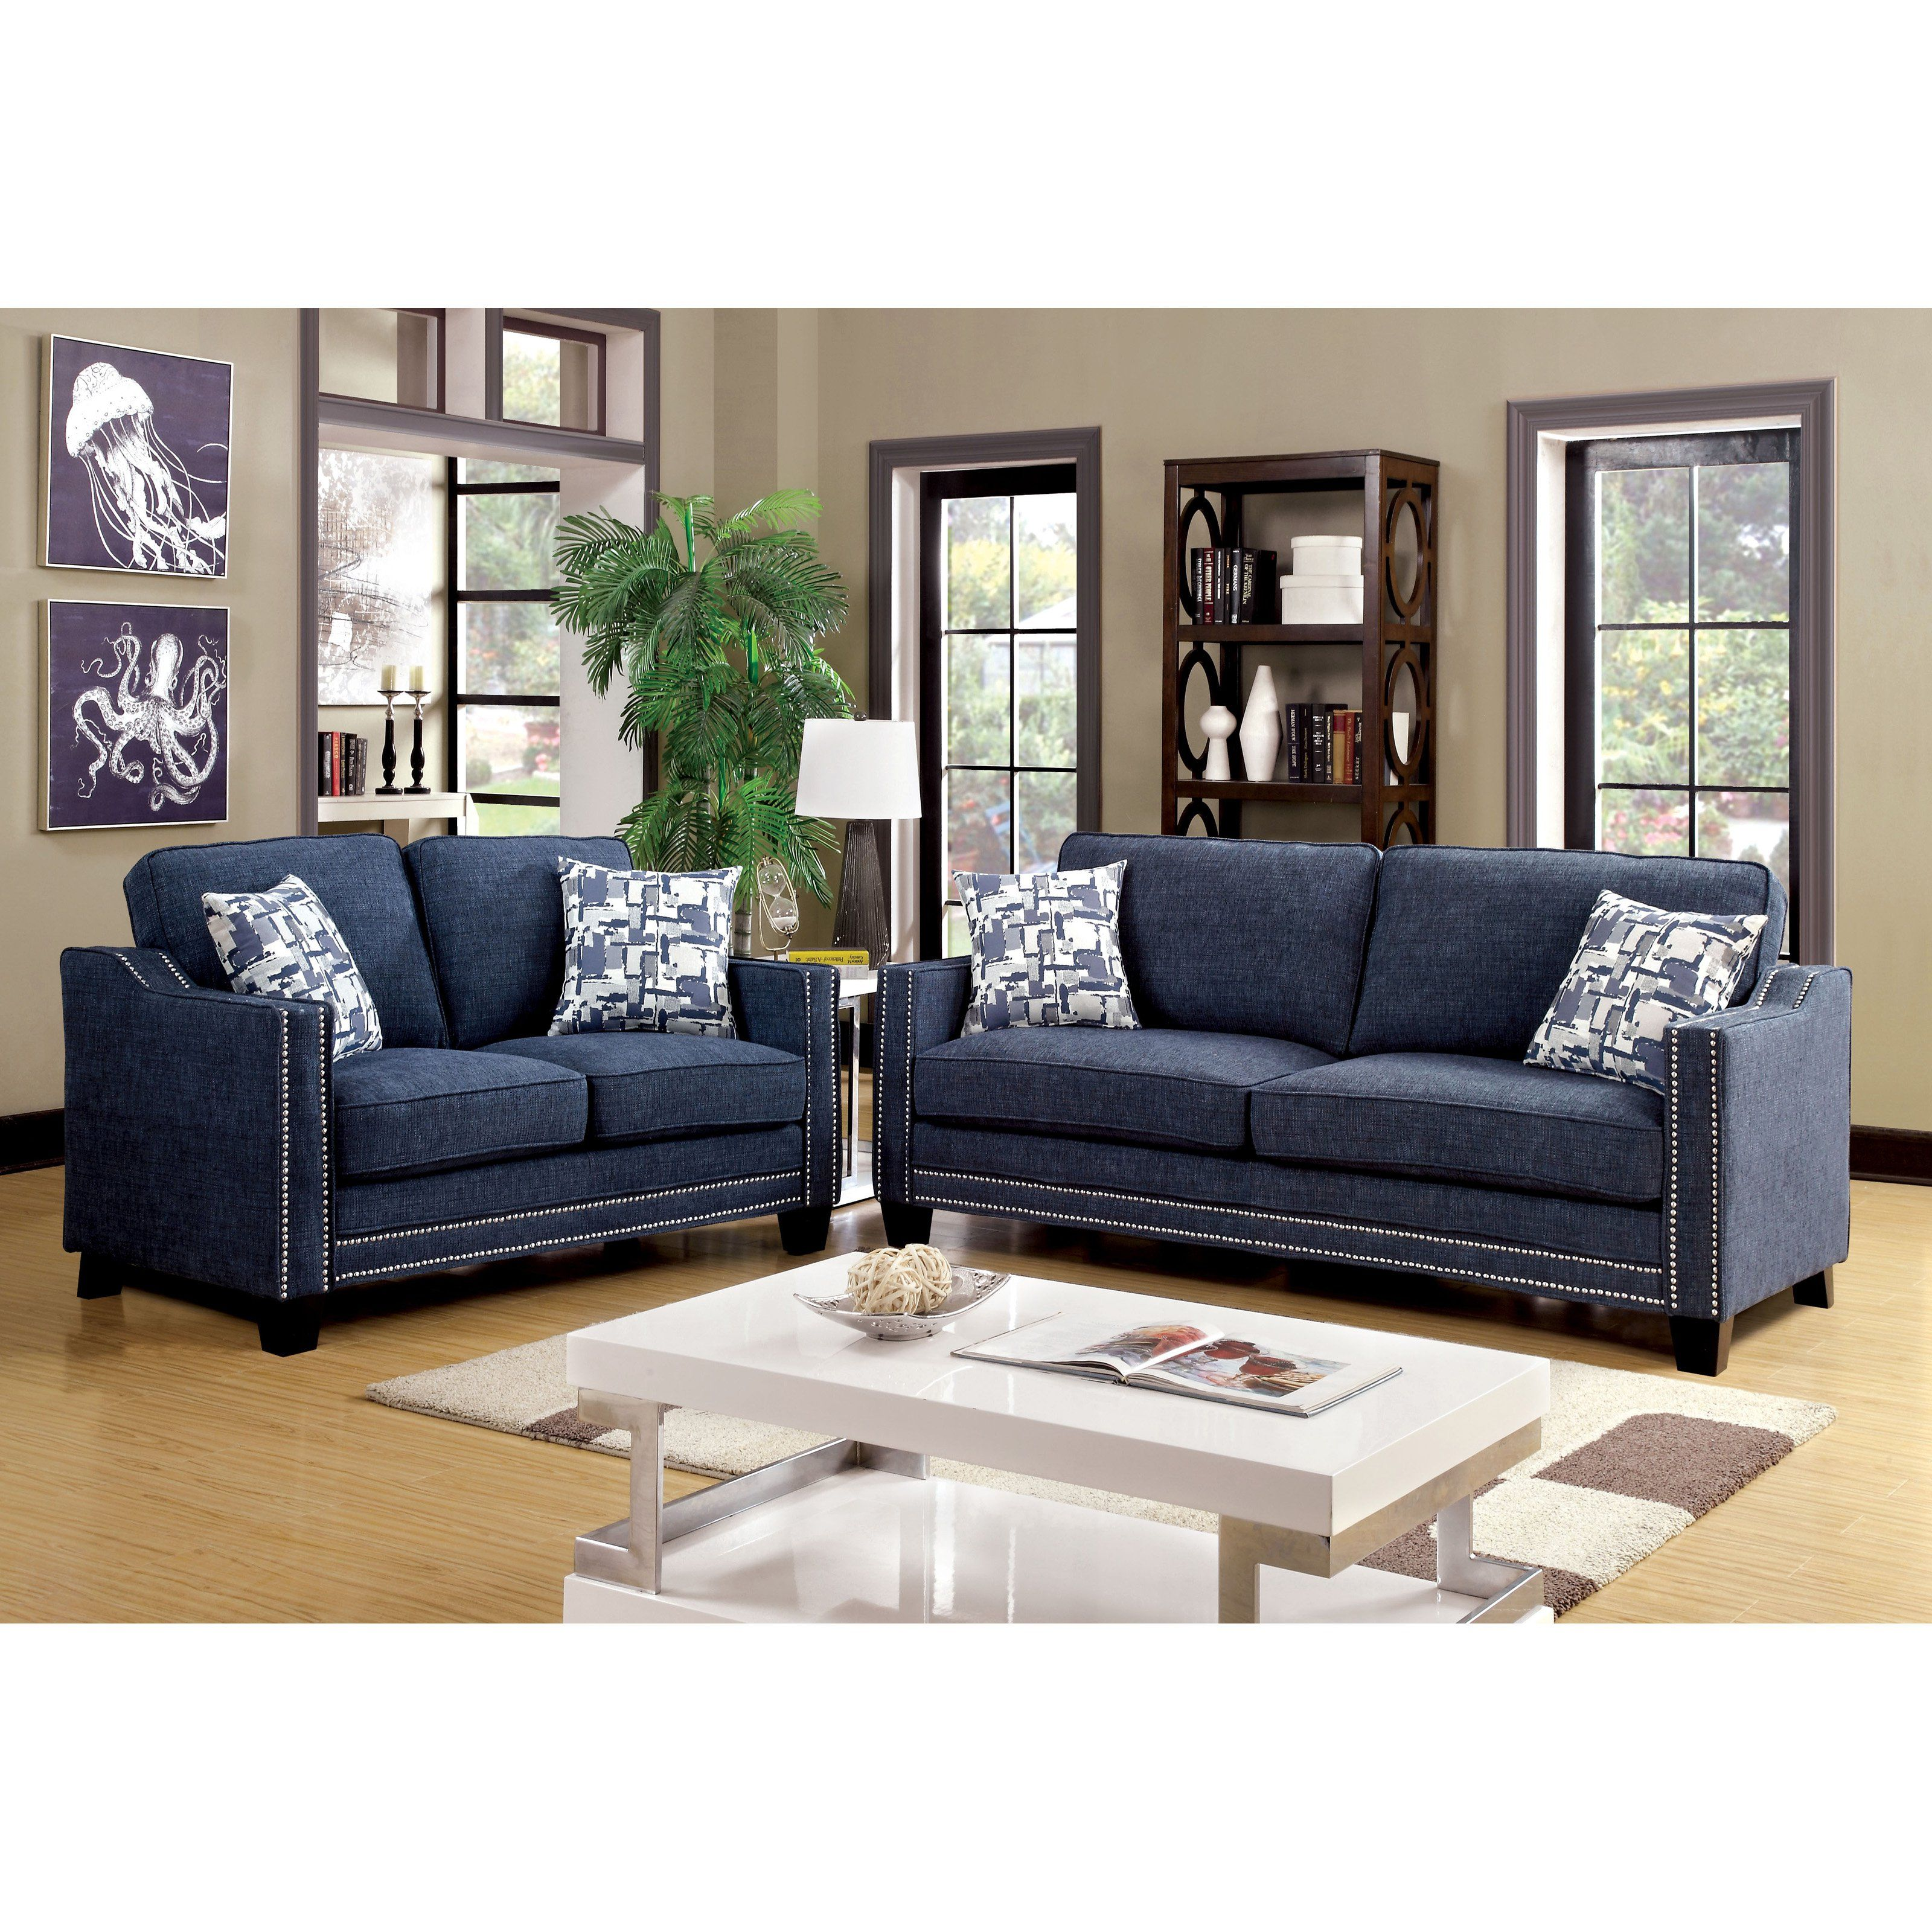 jive chenille living room furniture collection dark wood sets uk of america polin 2 piece studded sofa set idf 6157bl 2pc